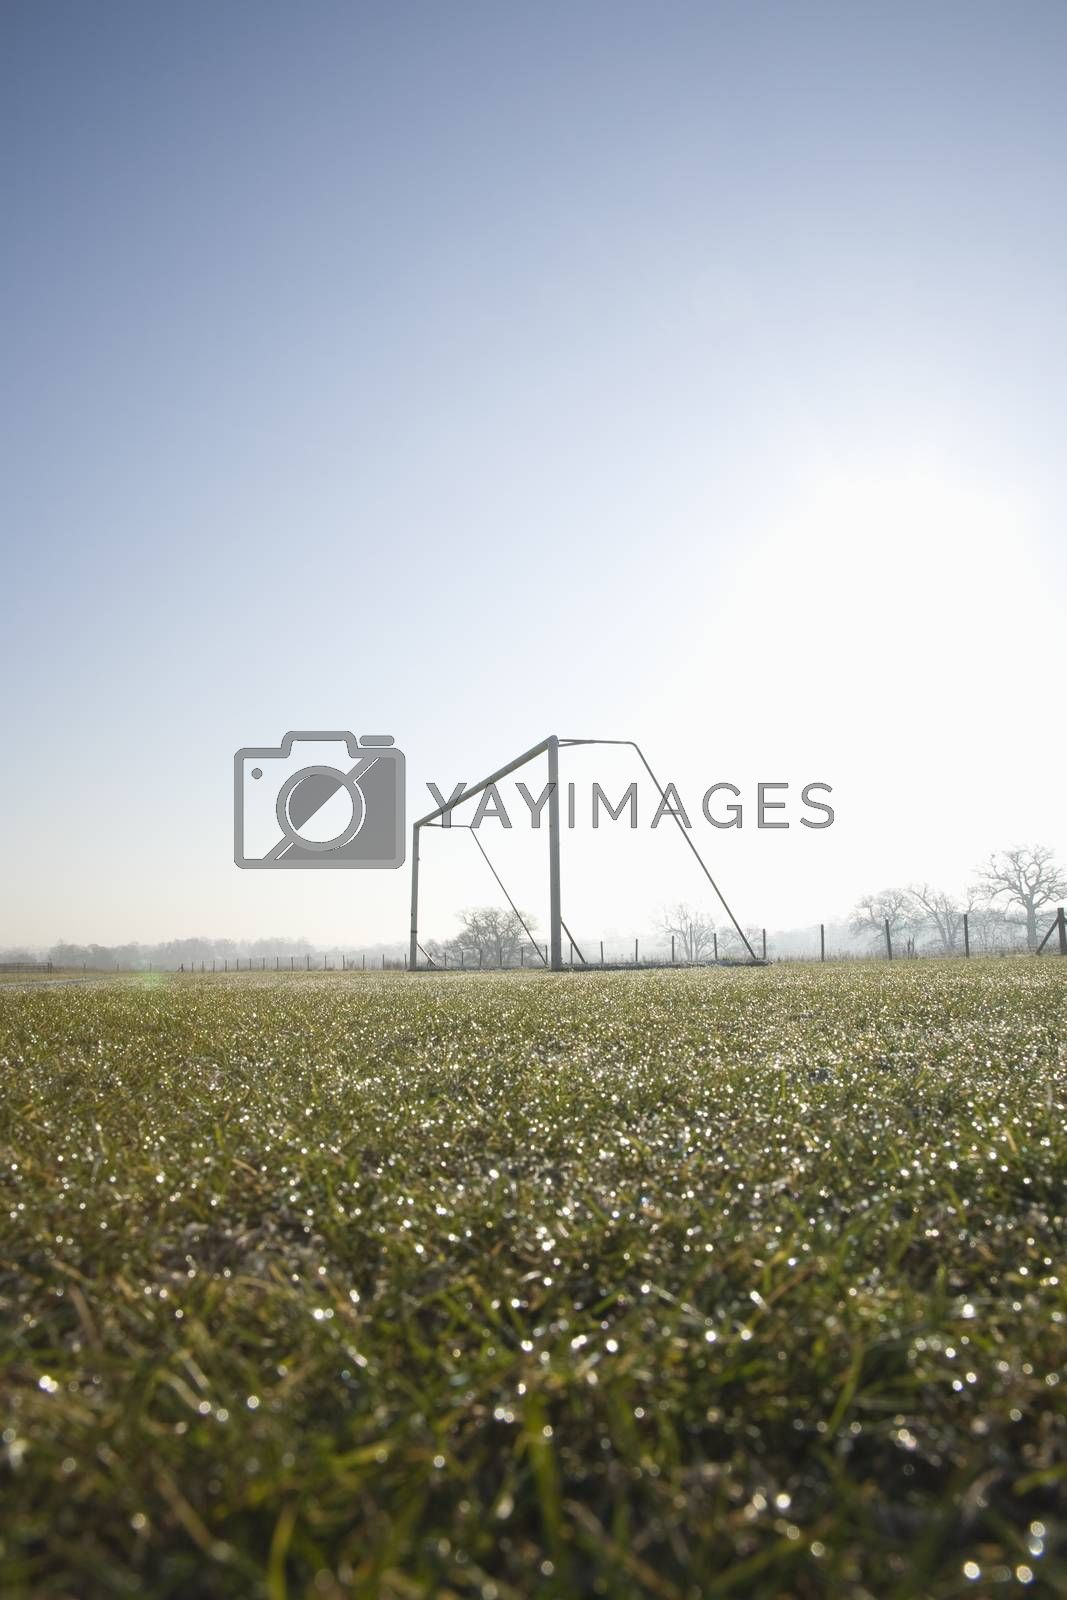 Royalty free image of empty football pitch and goal on a frosty winter morning sunrise by littlebloke